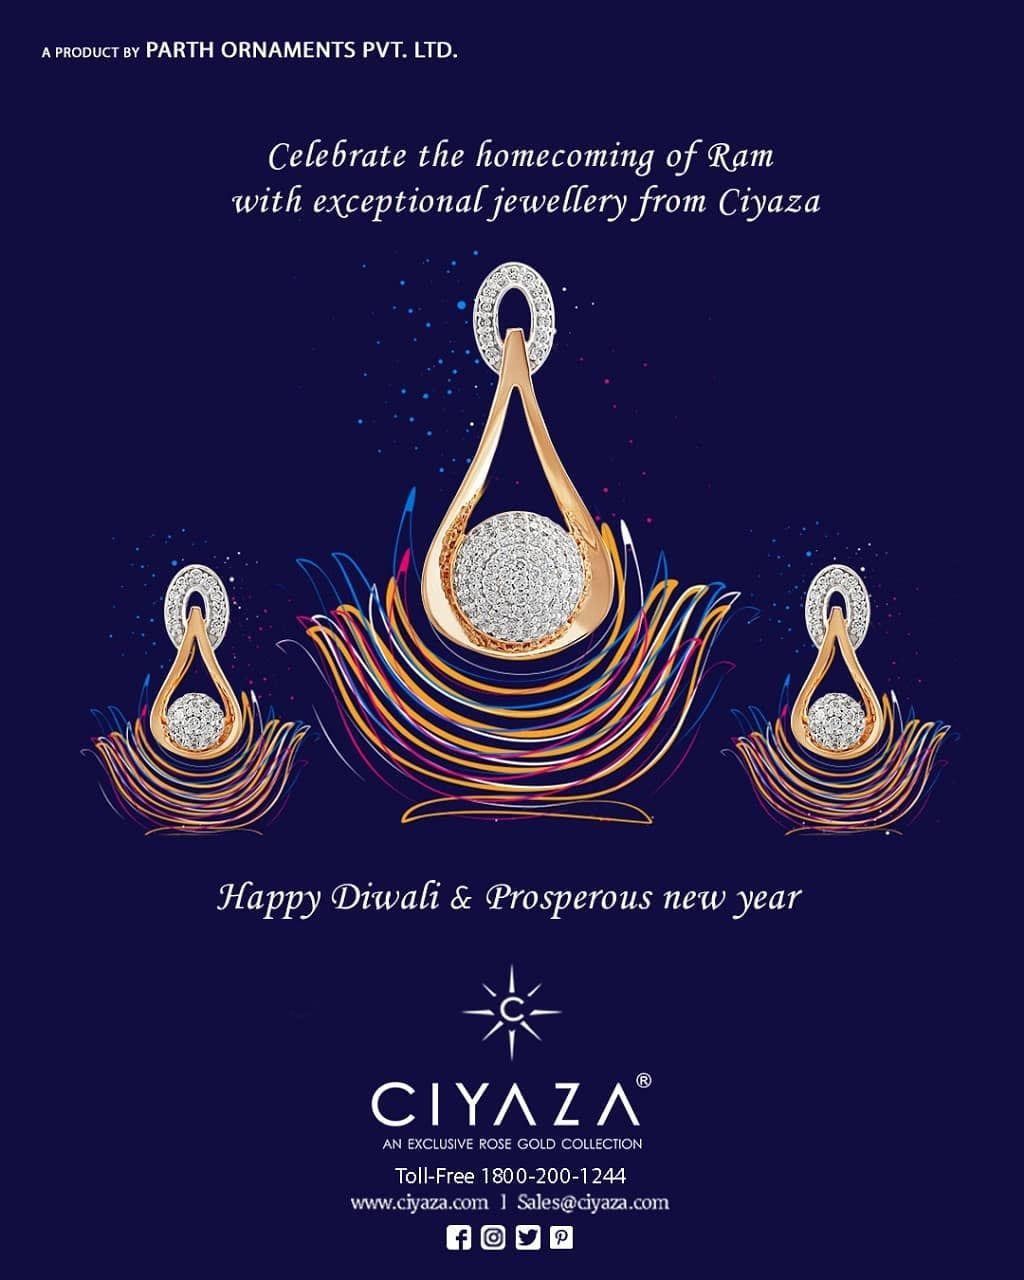 Wishing you a happy prosperous Diwali and New year. Don't